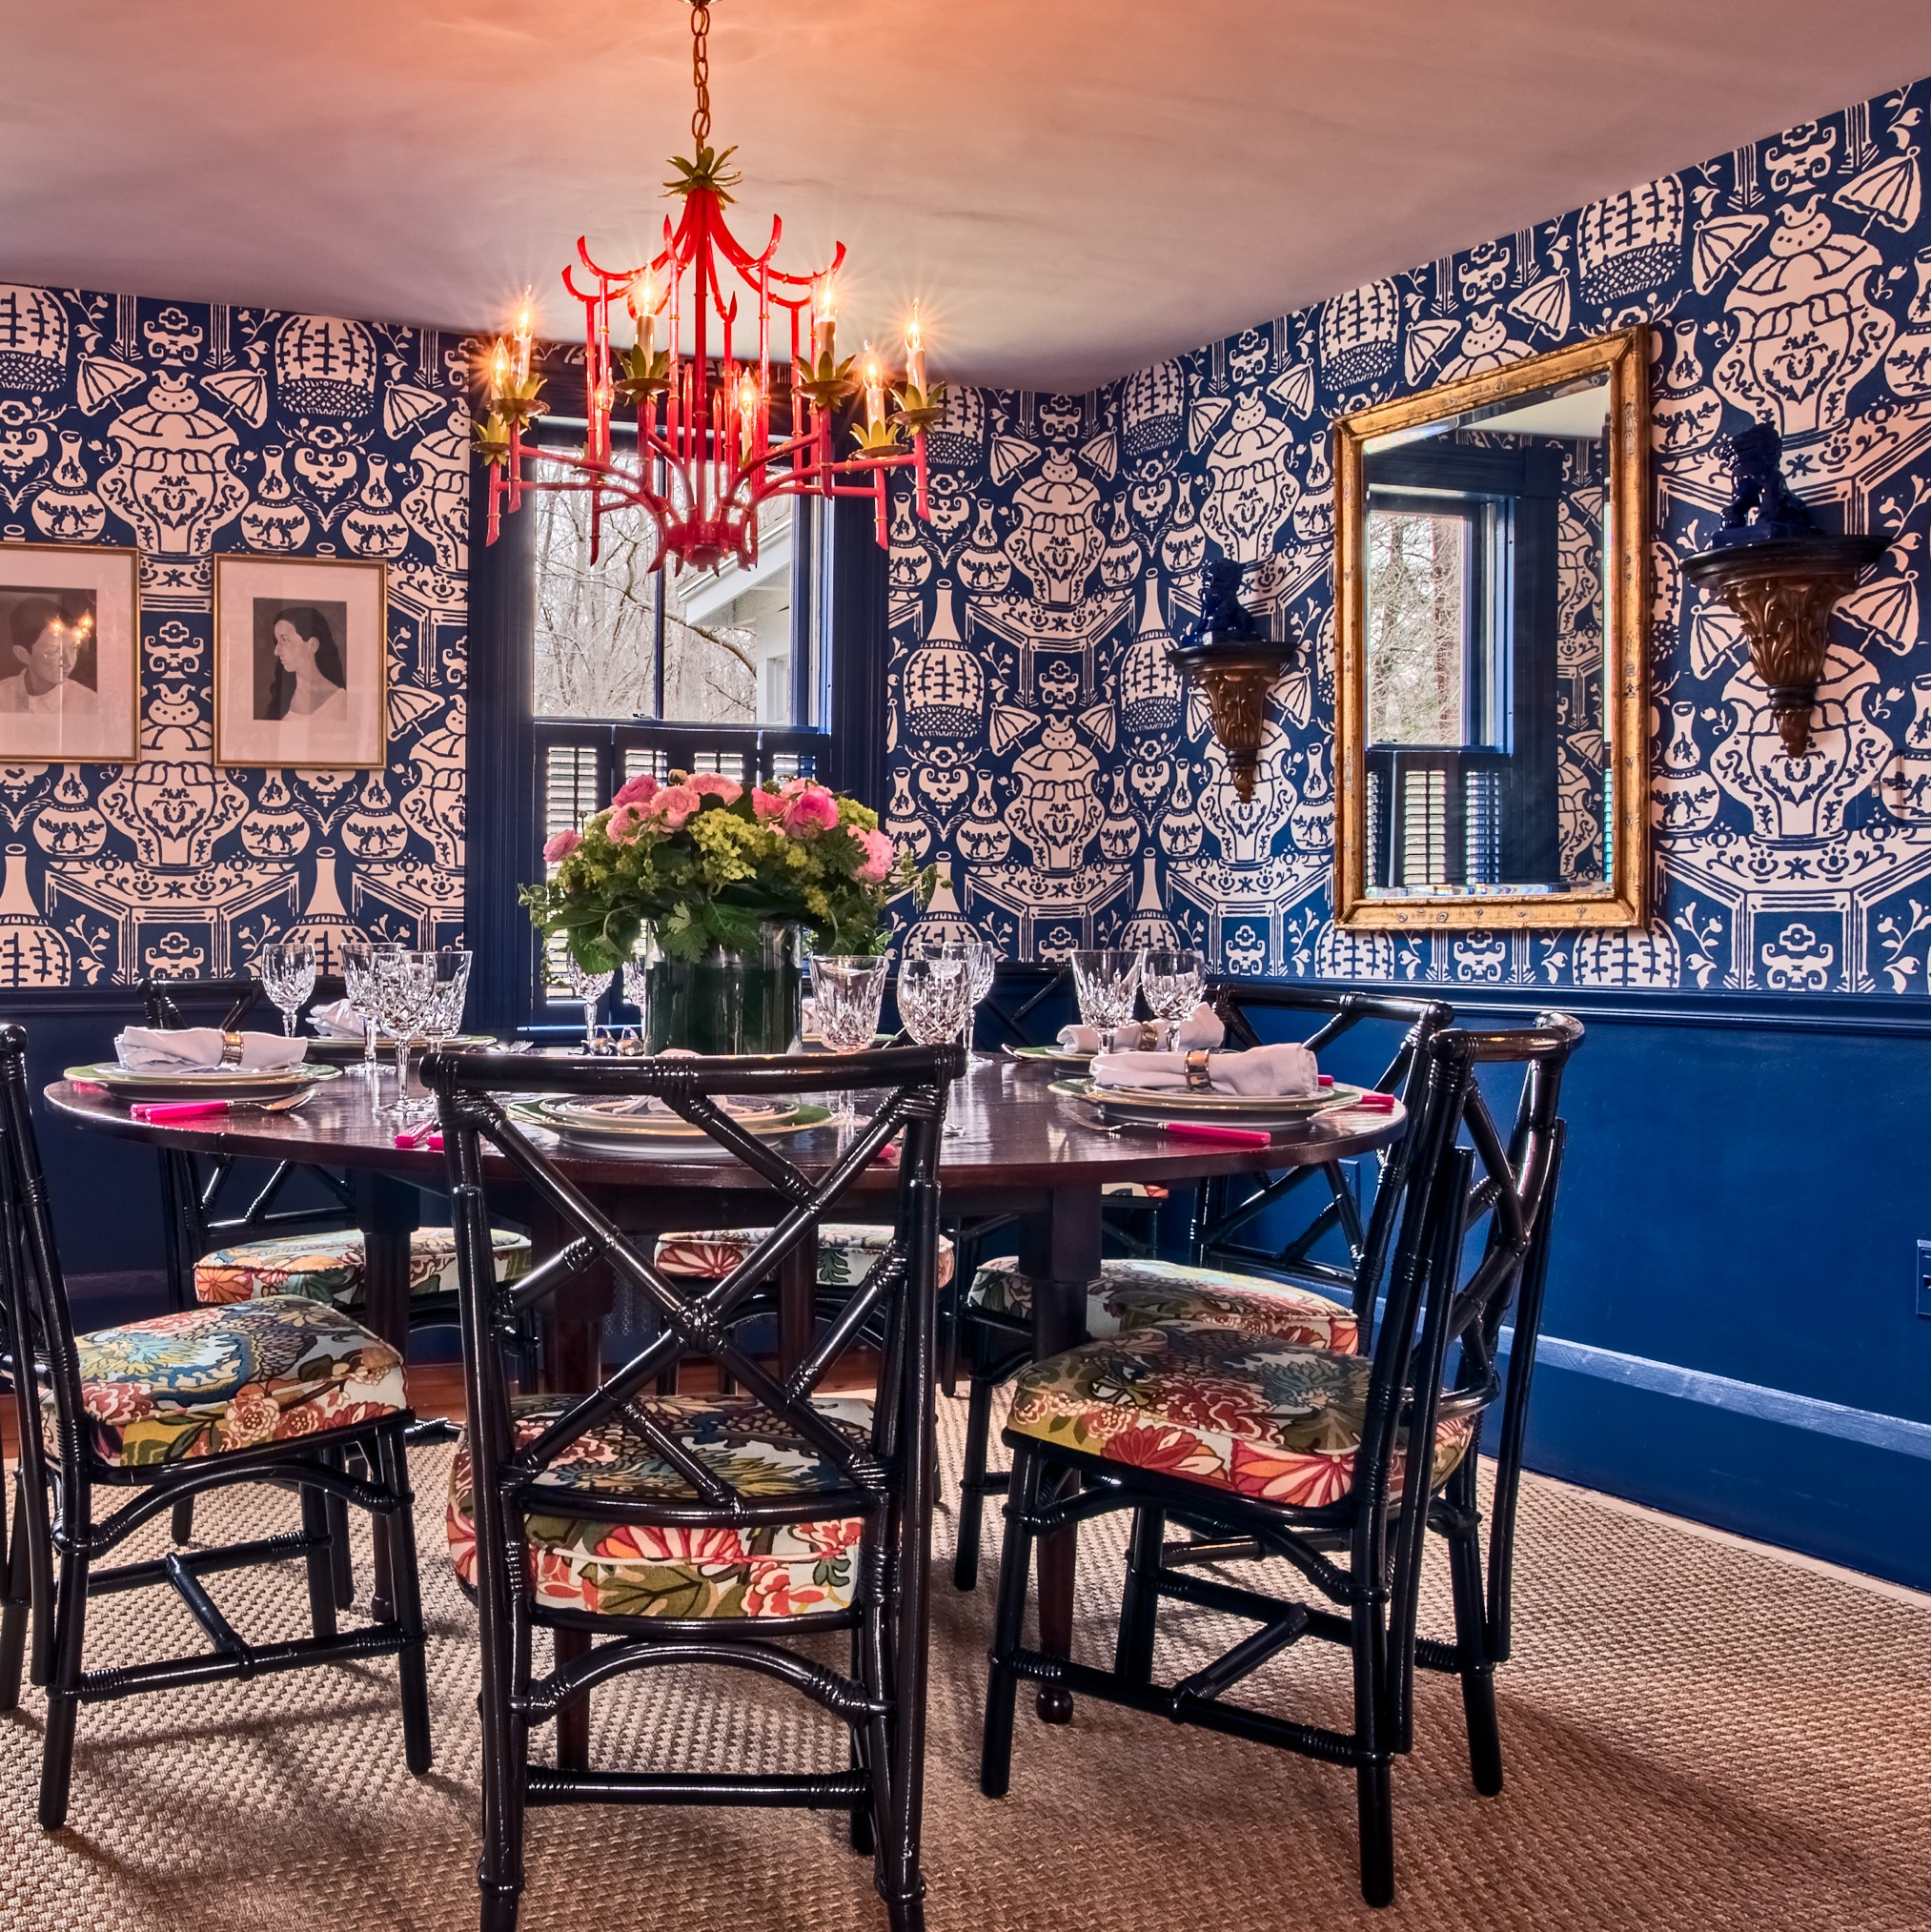 This is quite a cheerful and colorful dining room! The dragon upholstery on the lacquered bamboo chairs, the wallpaper, the pink pagoda chandelier, and the ceramics on the mantel are all Chinoiserie features.